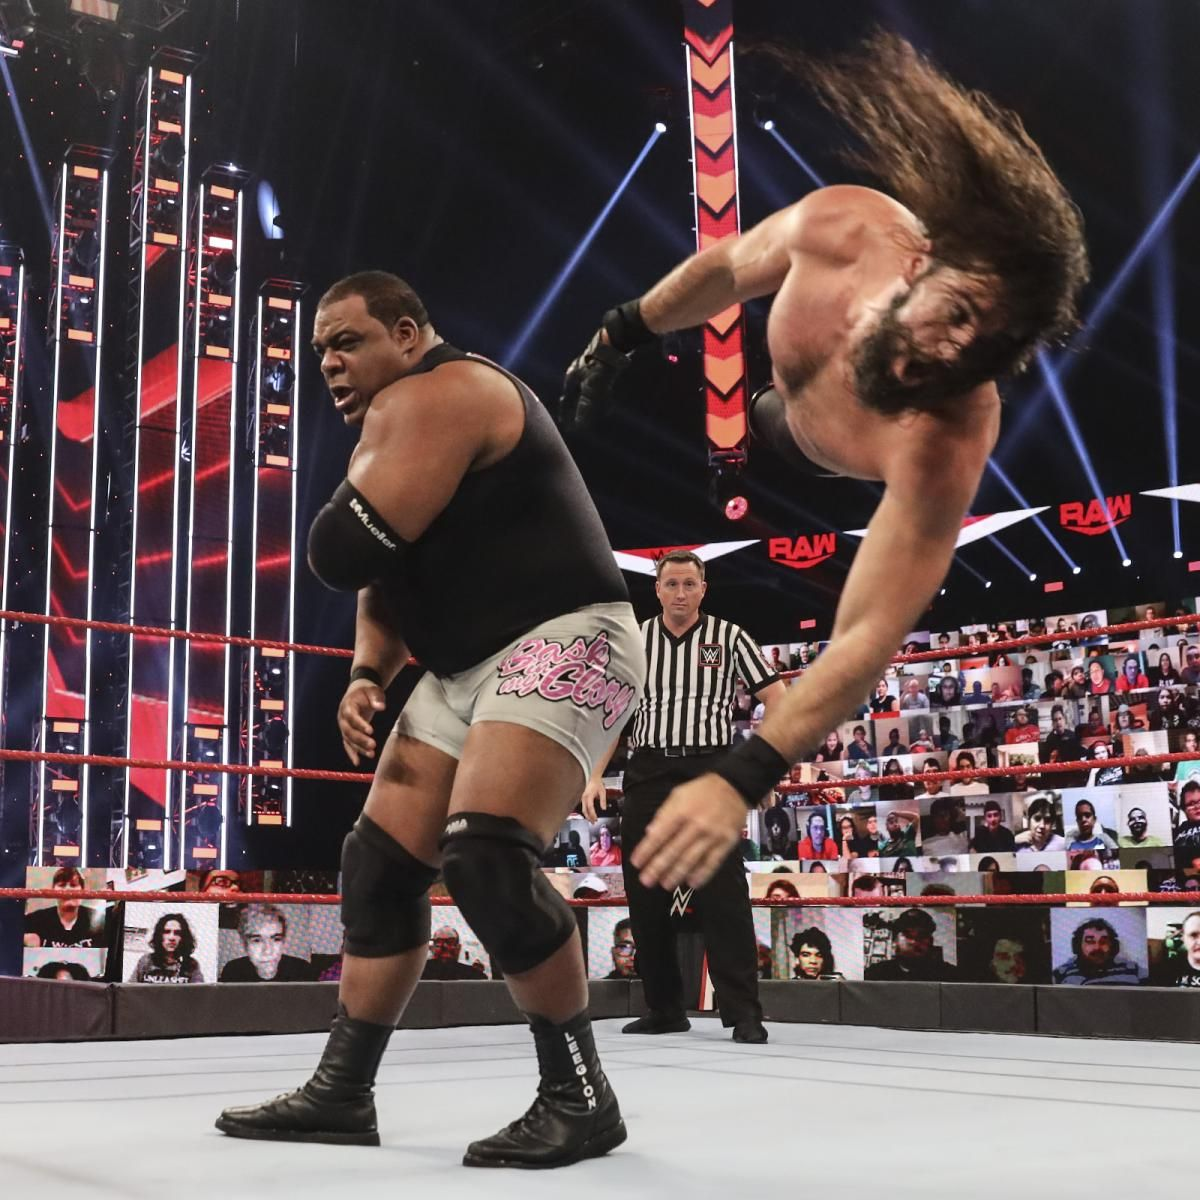 Photos Don T Miss These Amazing Images From The Red Brand Clash Of Champions Wwe Champions Wwe